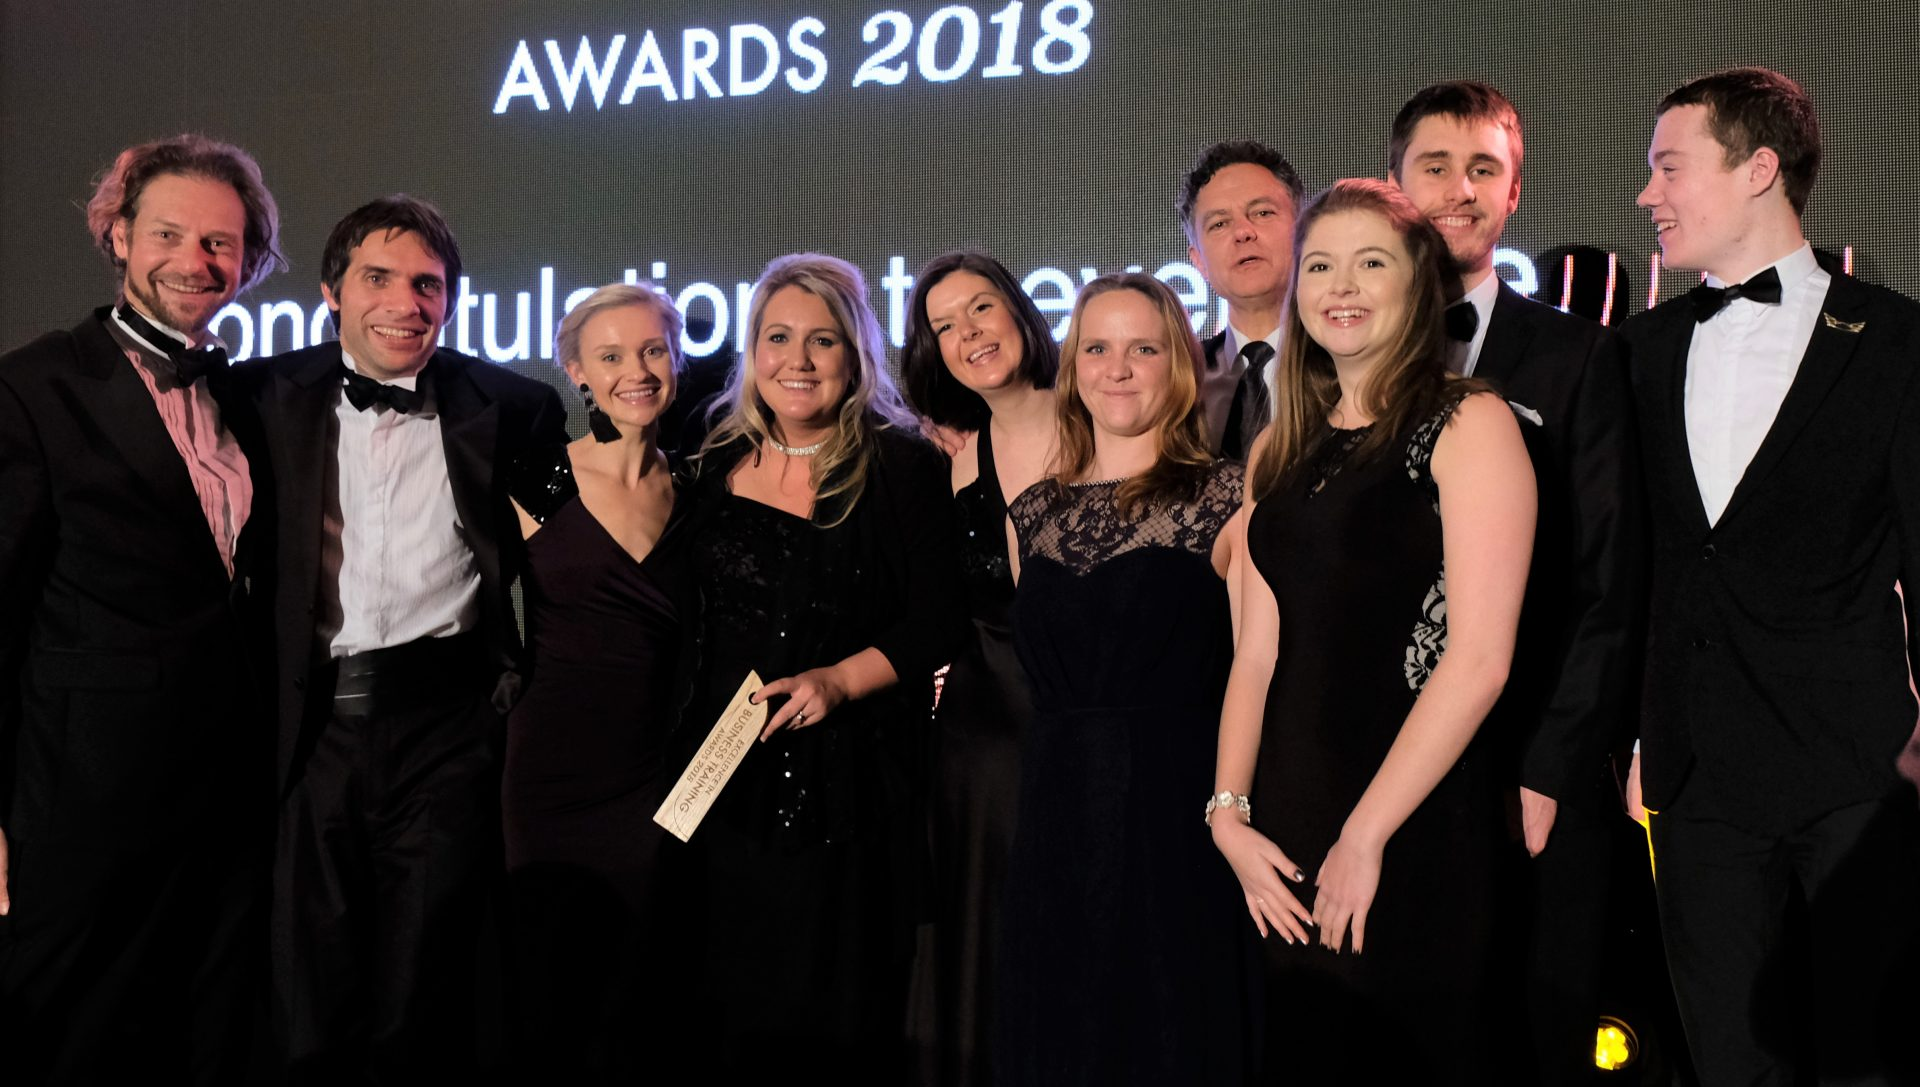 Staff and trainees at the Business Training Awards 2018